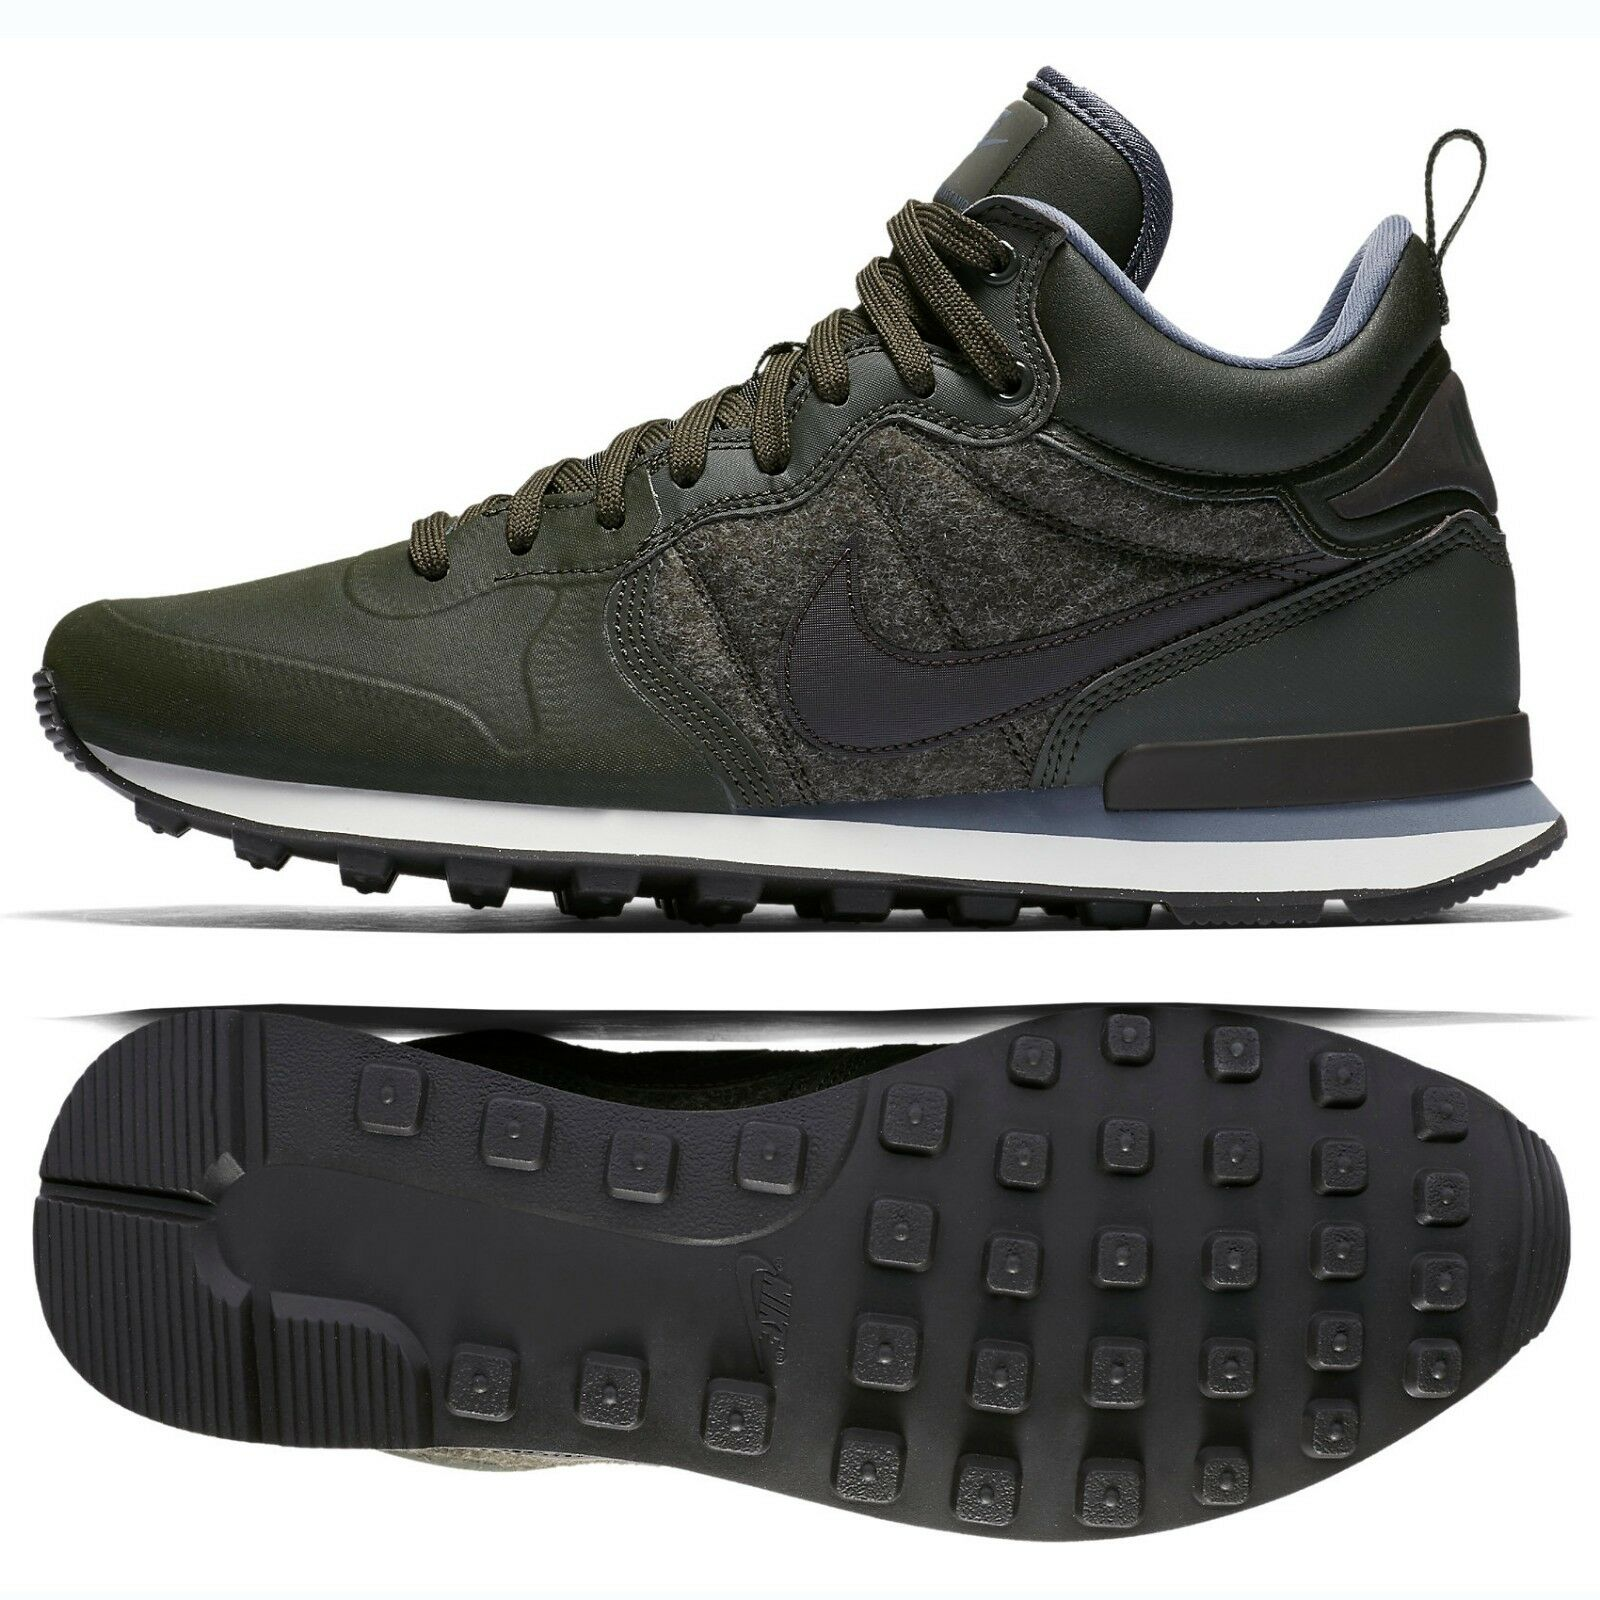 Nike Internationalist Utility Wool Pack 857937-301 Sequoia Brown Men's shoes